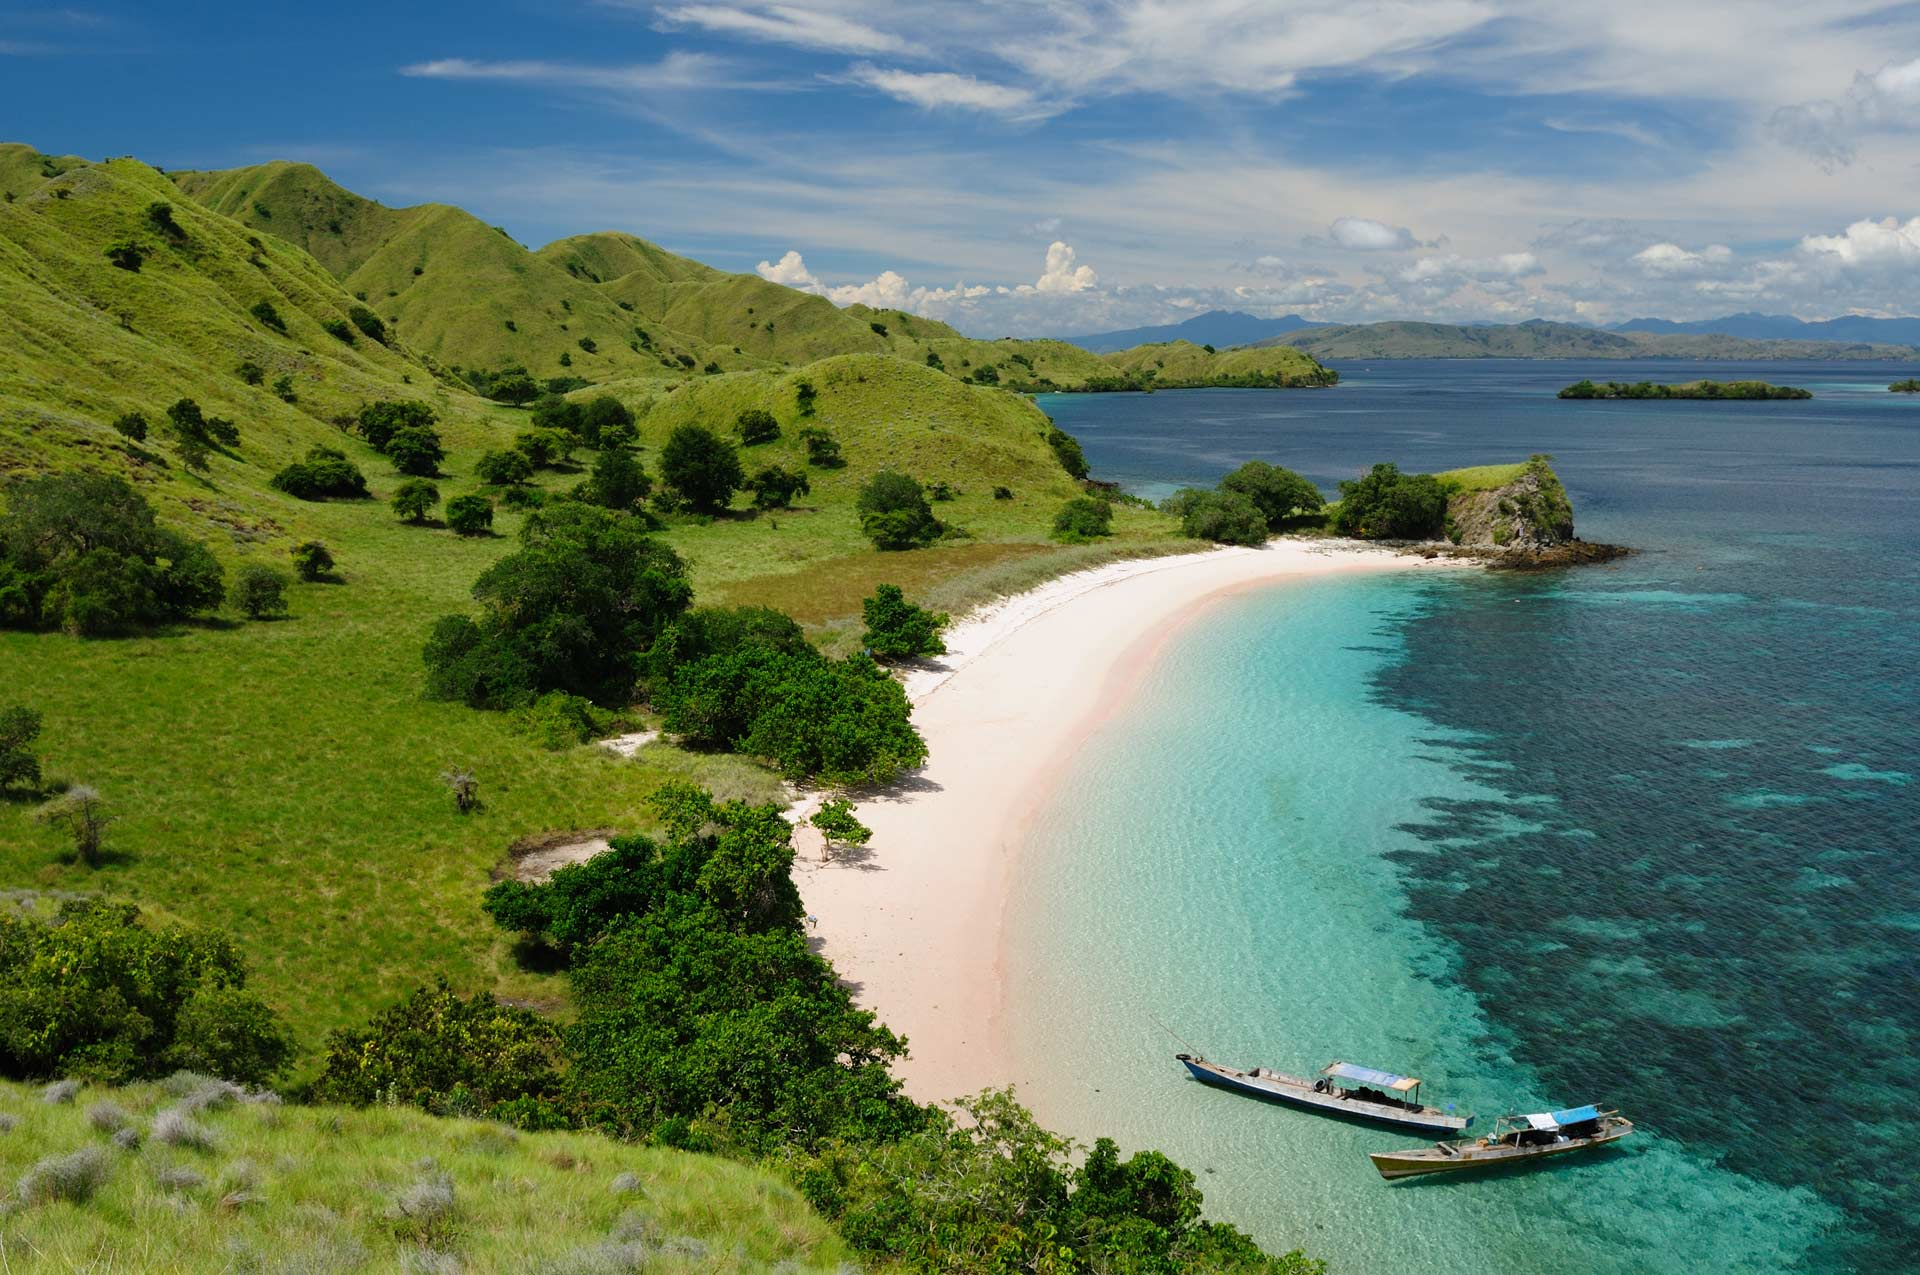 Beautiful Pink beach with pink sand and turquoise water in the national park on Komodo, Indonesia